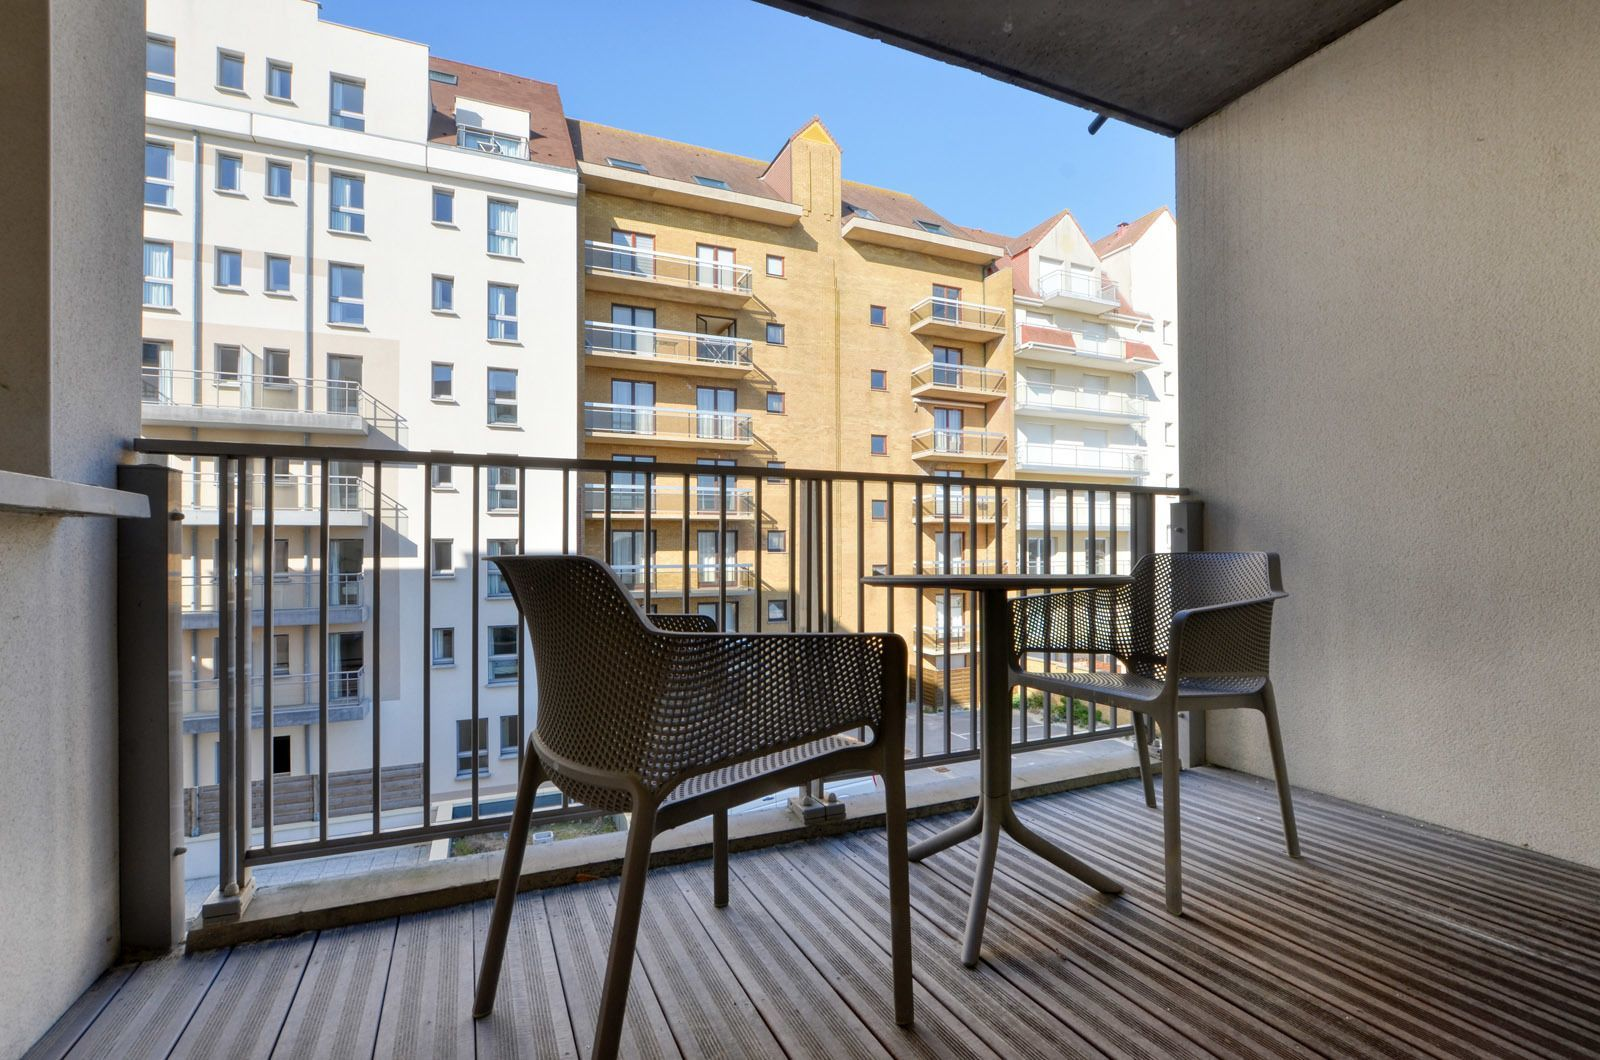 Apartment for 6 people (4 adults - 2 children) with balcony